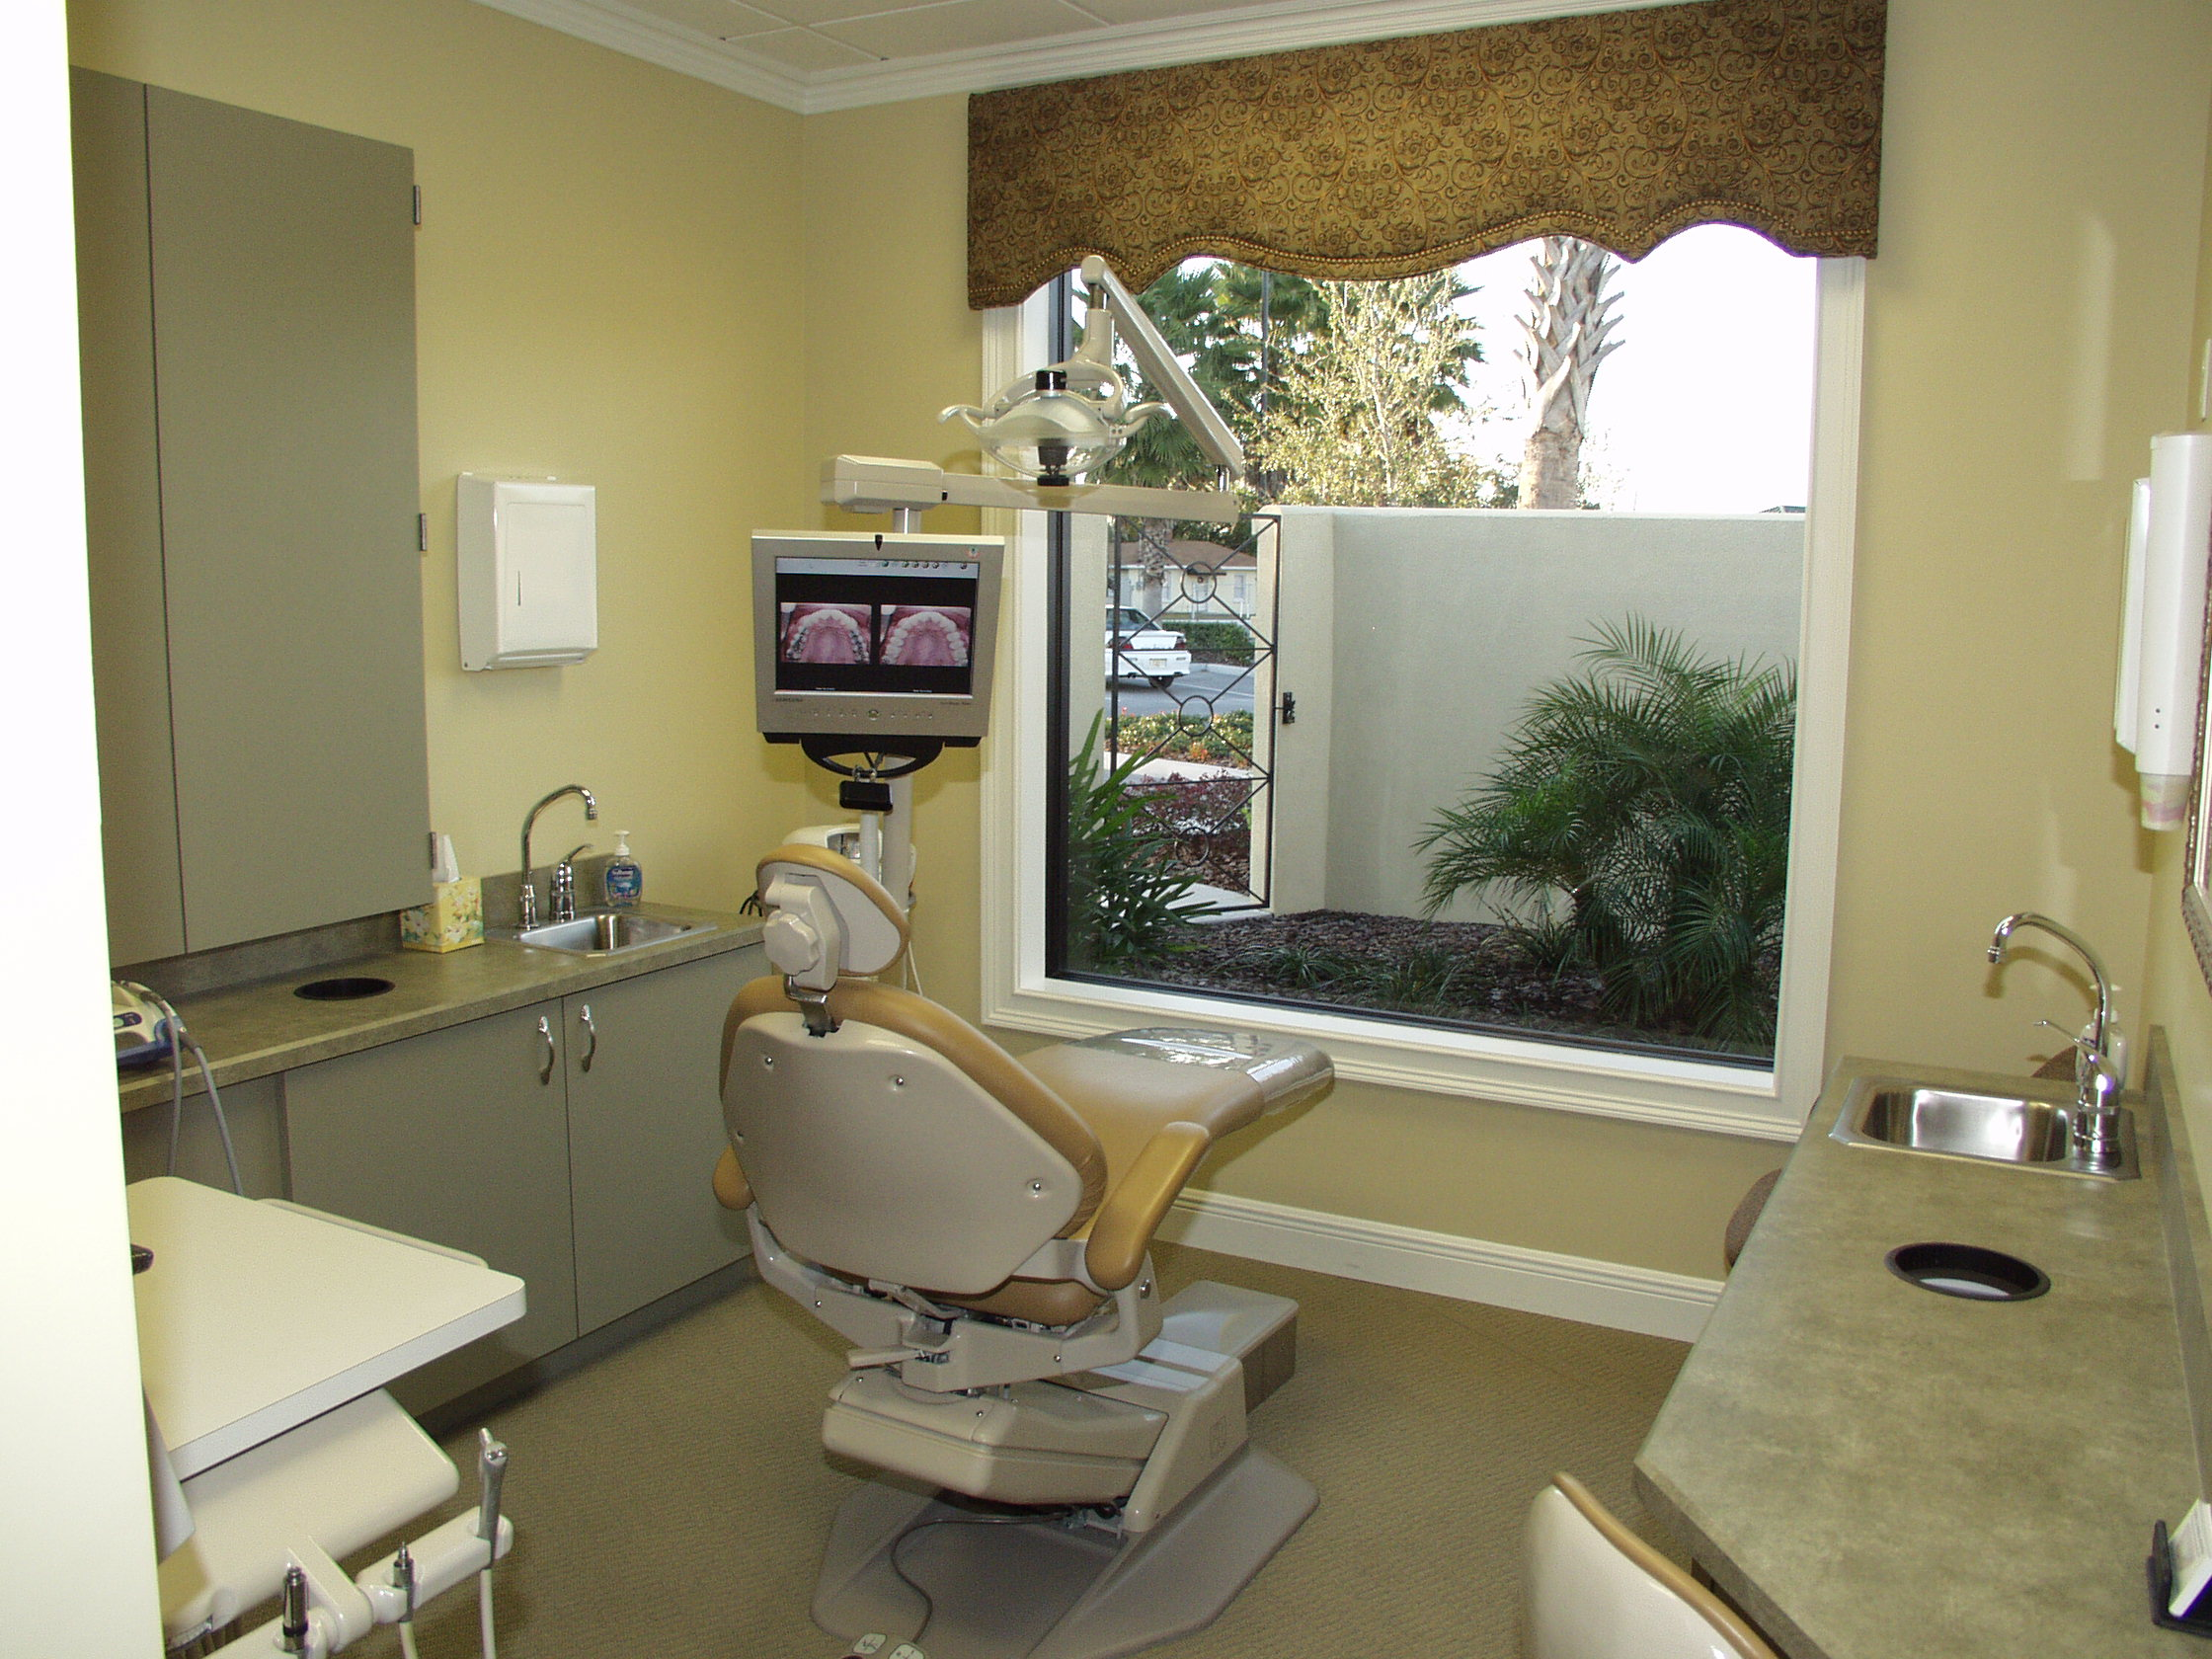 Dental Office Design Ideas dental office decorating ideas 4 home office design ideas Dental Office Designs Dentists Hd Wallpaper Pictures Top Dental Office